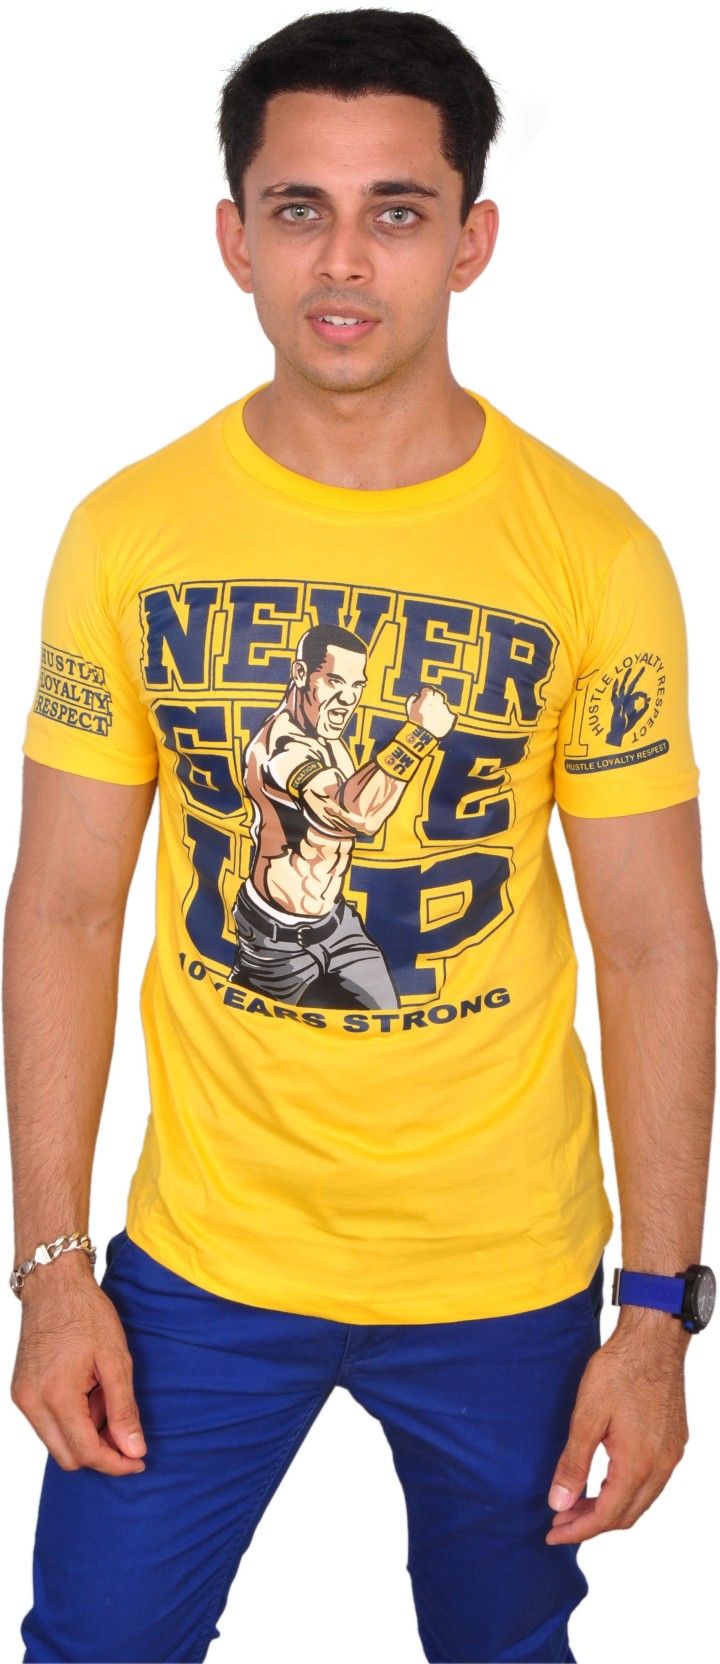 8e96a6eaaec John Cena T Shirt Online Shopping In India Cash On Delivery – EDGE ...